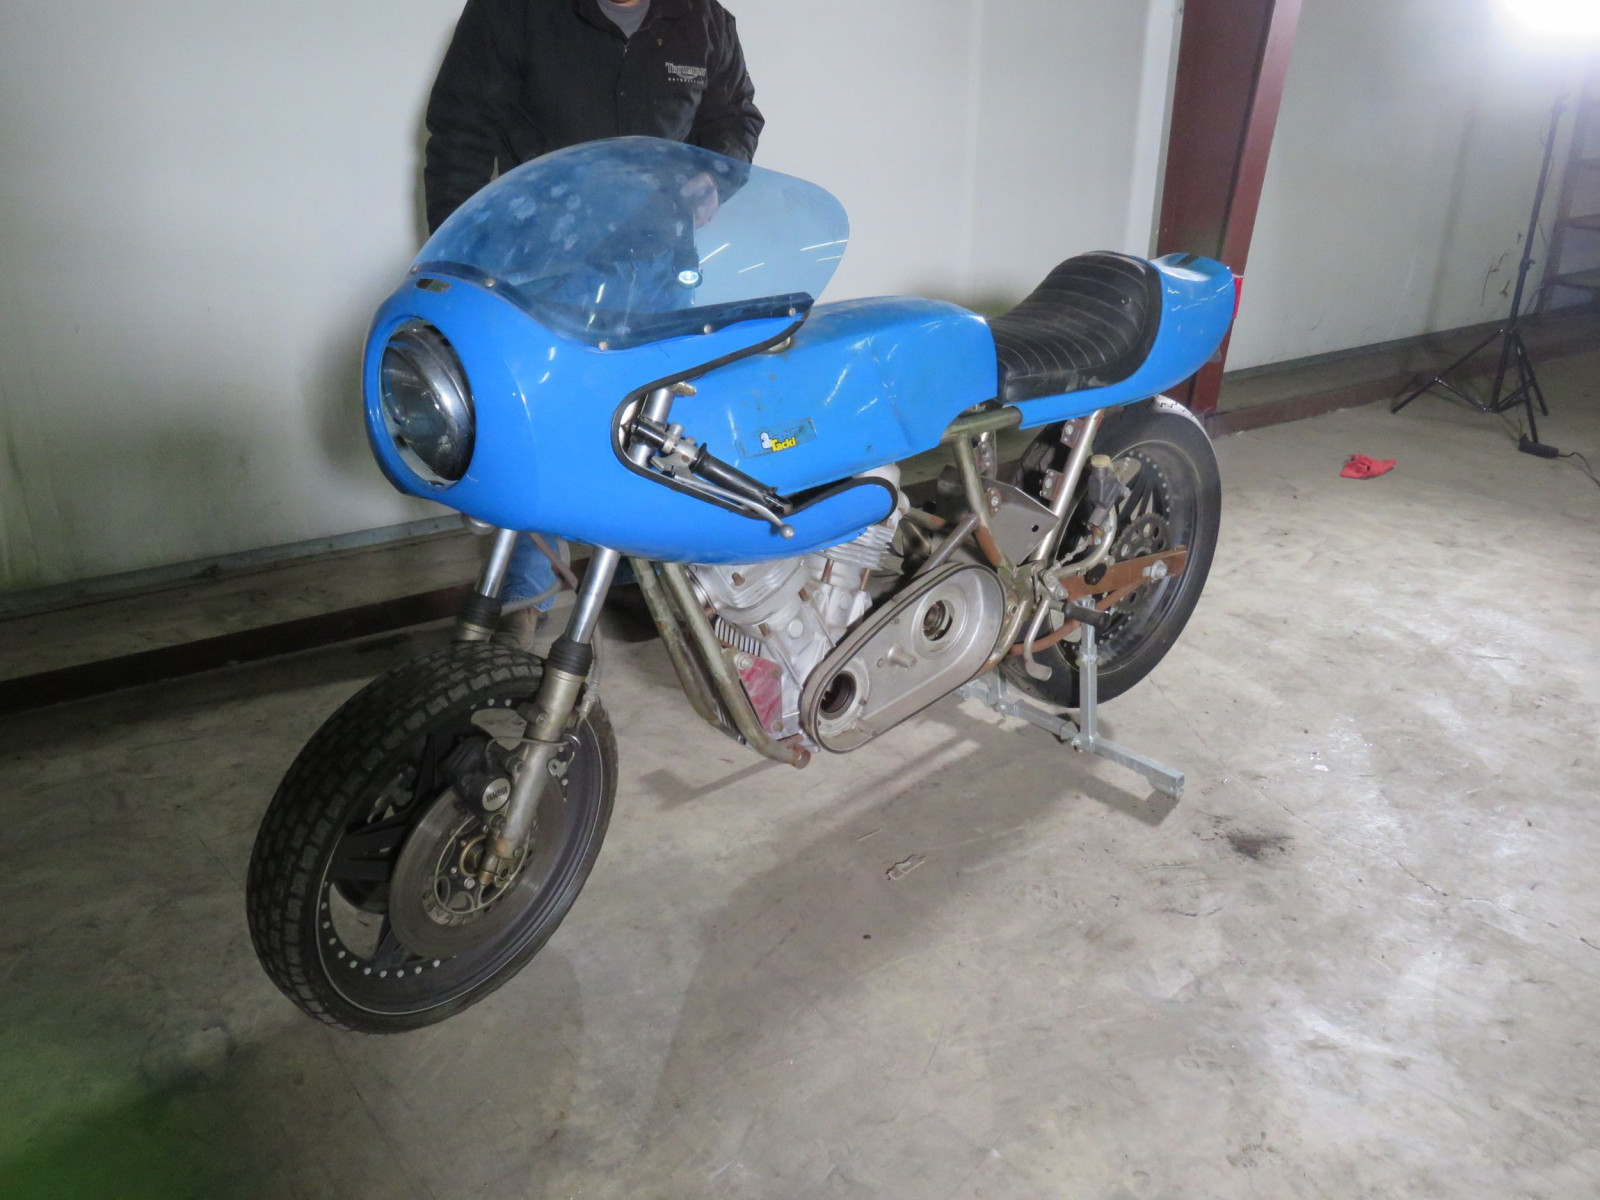 Homemade Mystery Motorcycle - Image 1